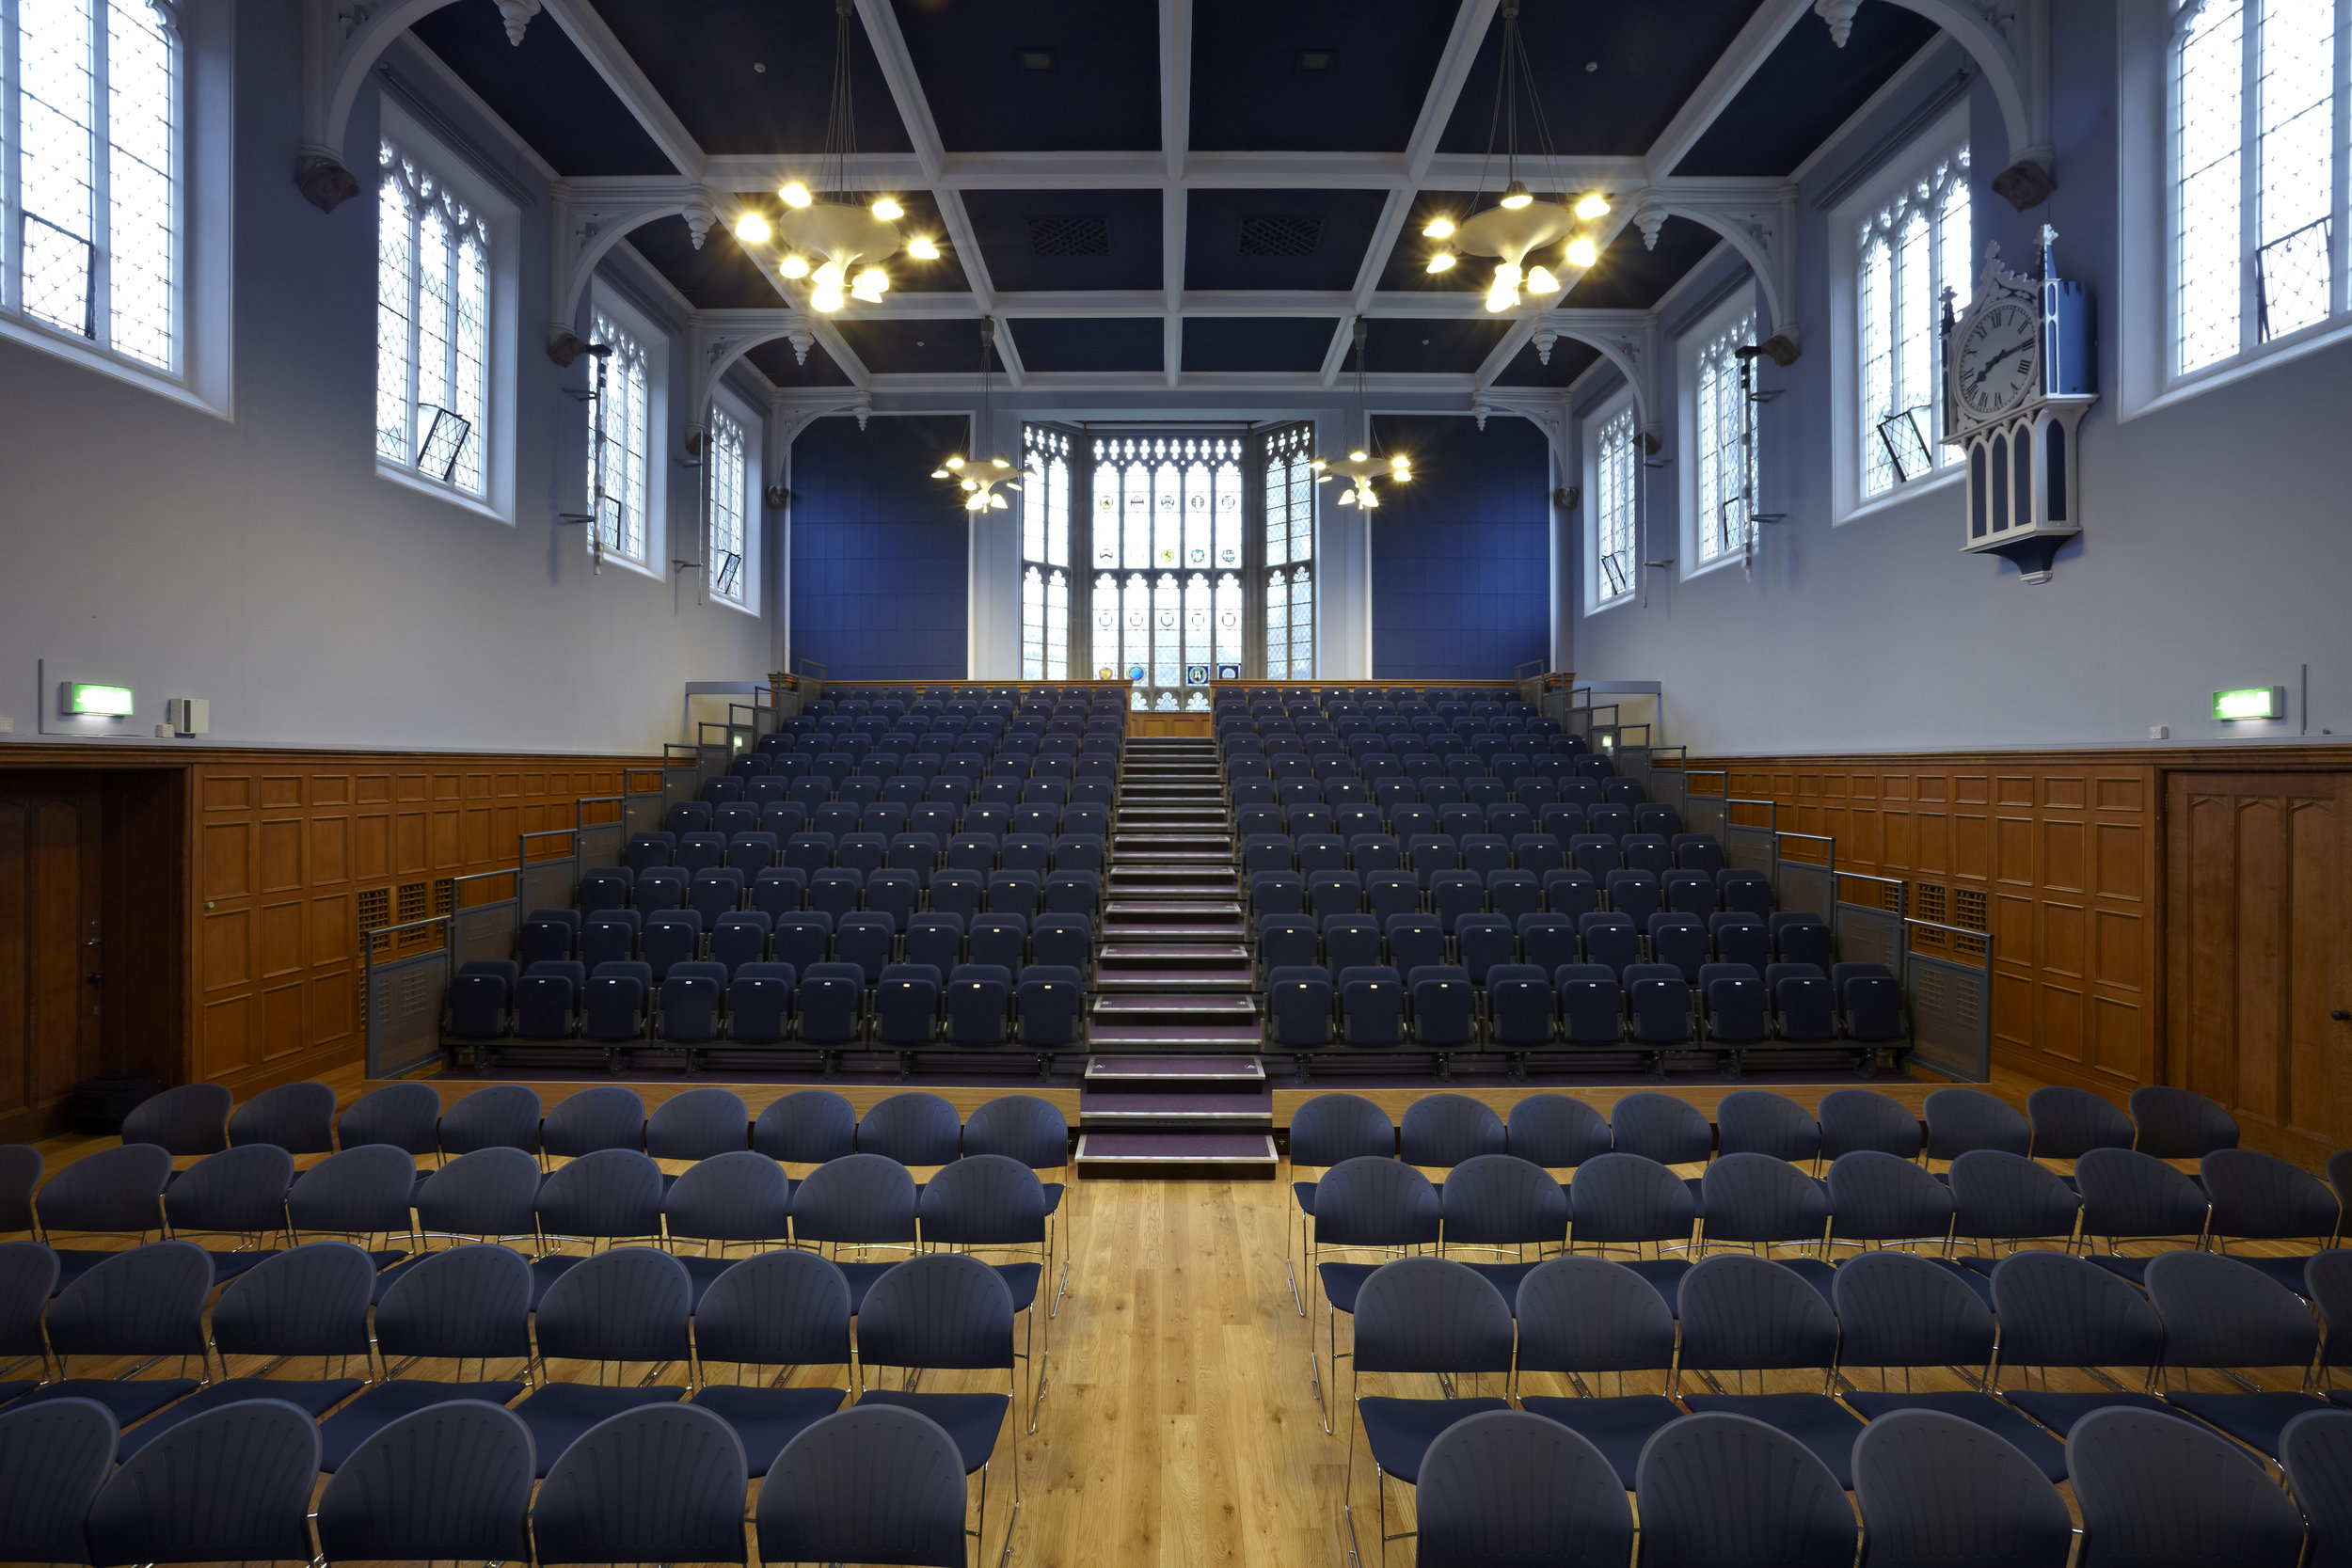 College lecture theatre with blue seating and wall colour and traditional wooden panelling.